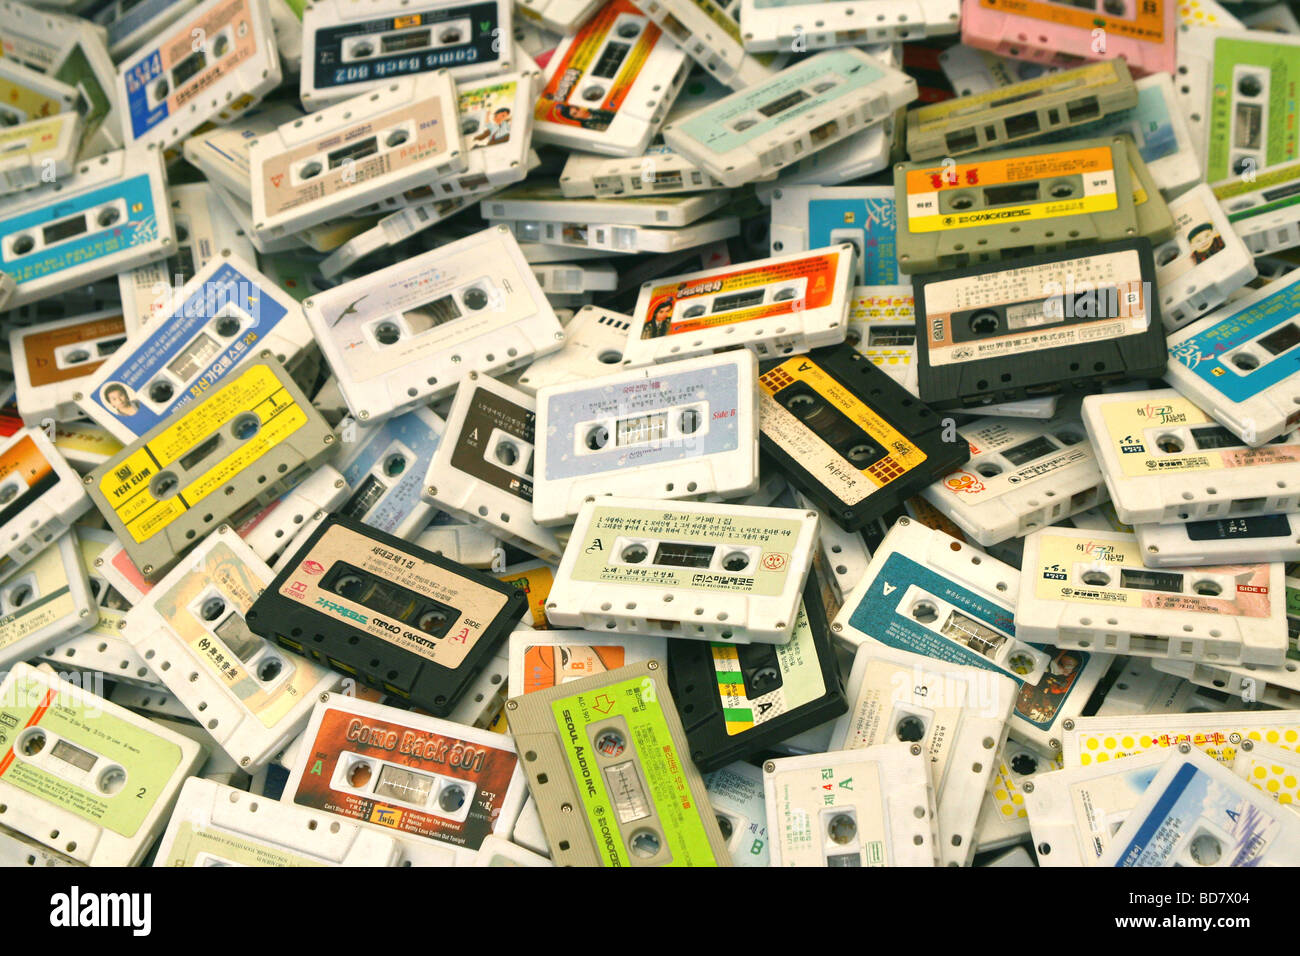 A pile of old audio cassette tapes in a market stall in Seoul, South Korea - Stock Image